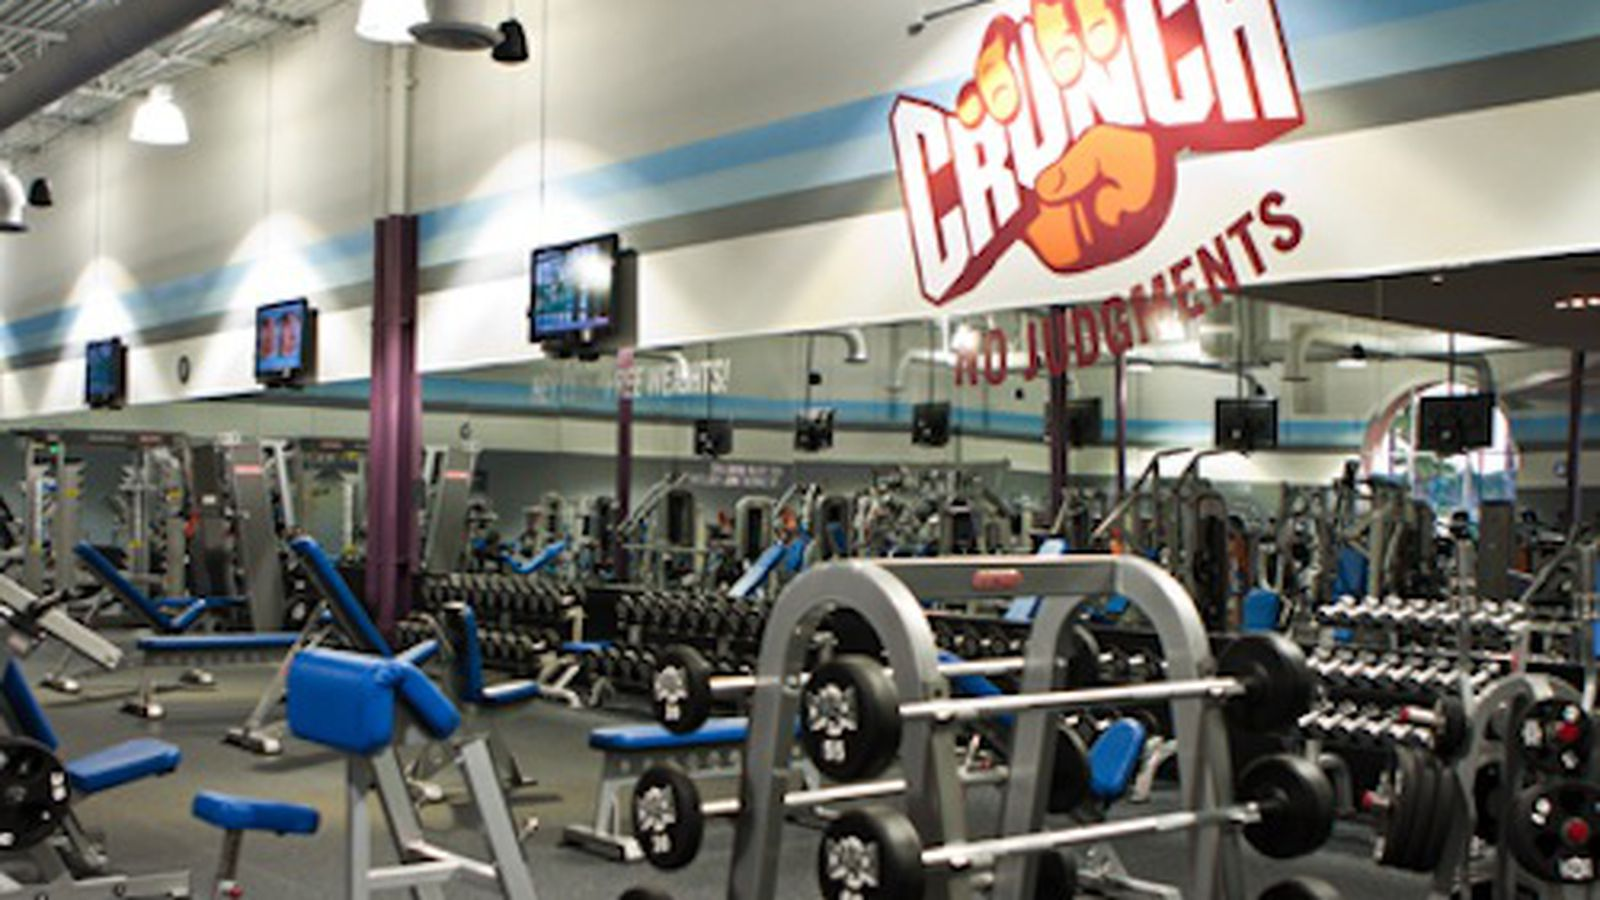 Crunch is a gym that believes in making serious exercise fun by fusing fitness and entertainment and pioneering a philosophy of No Judgments.